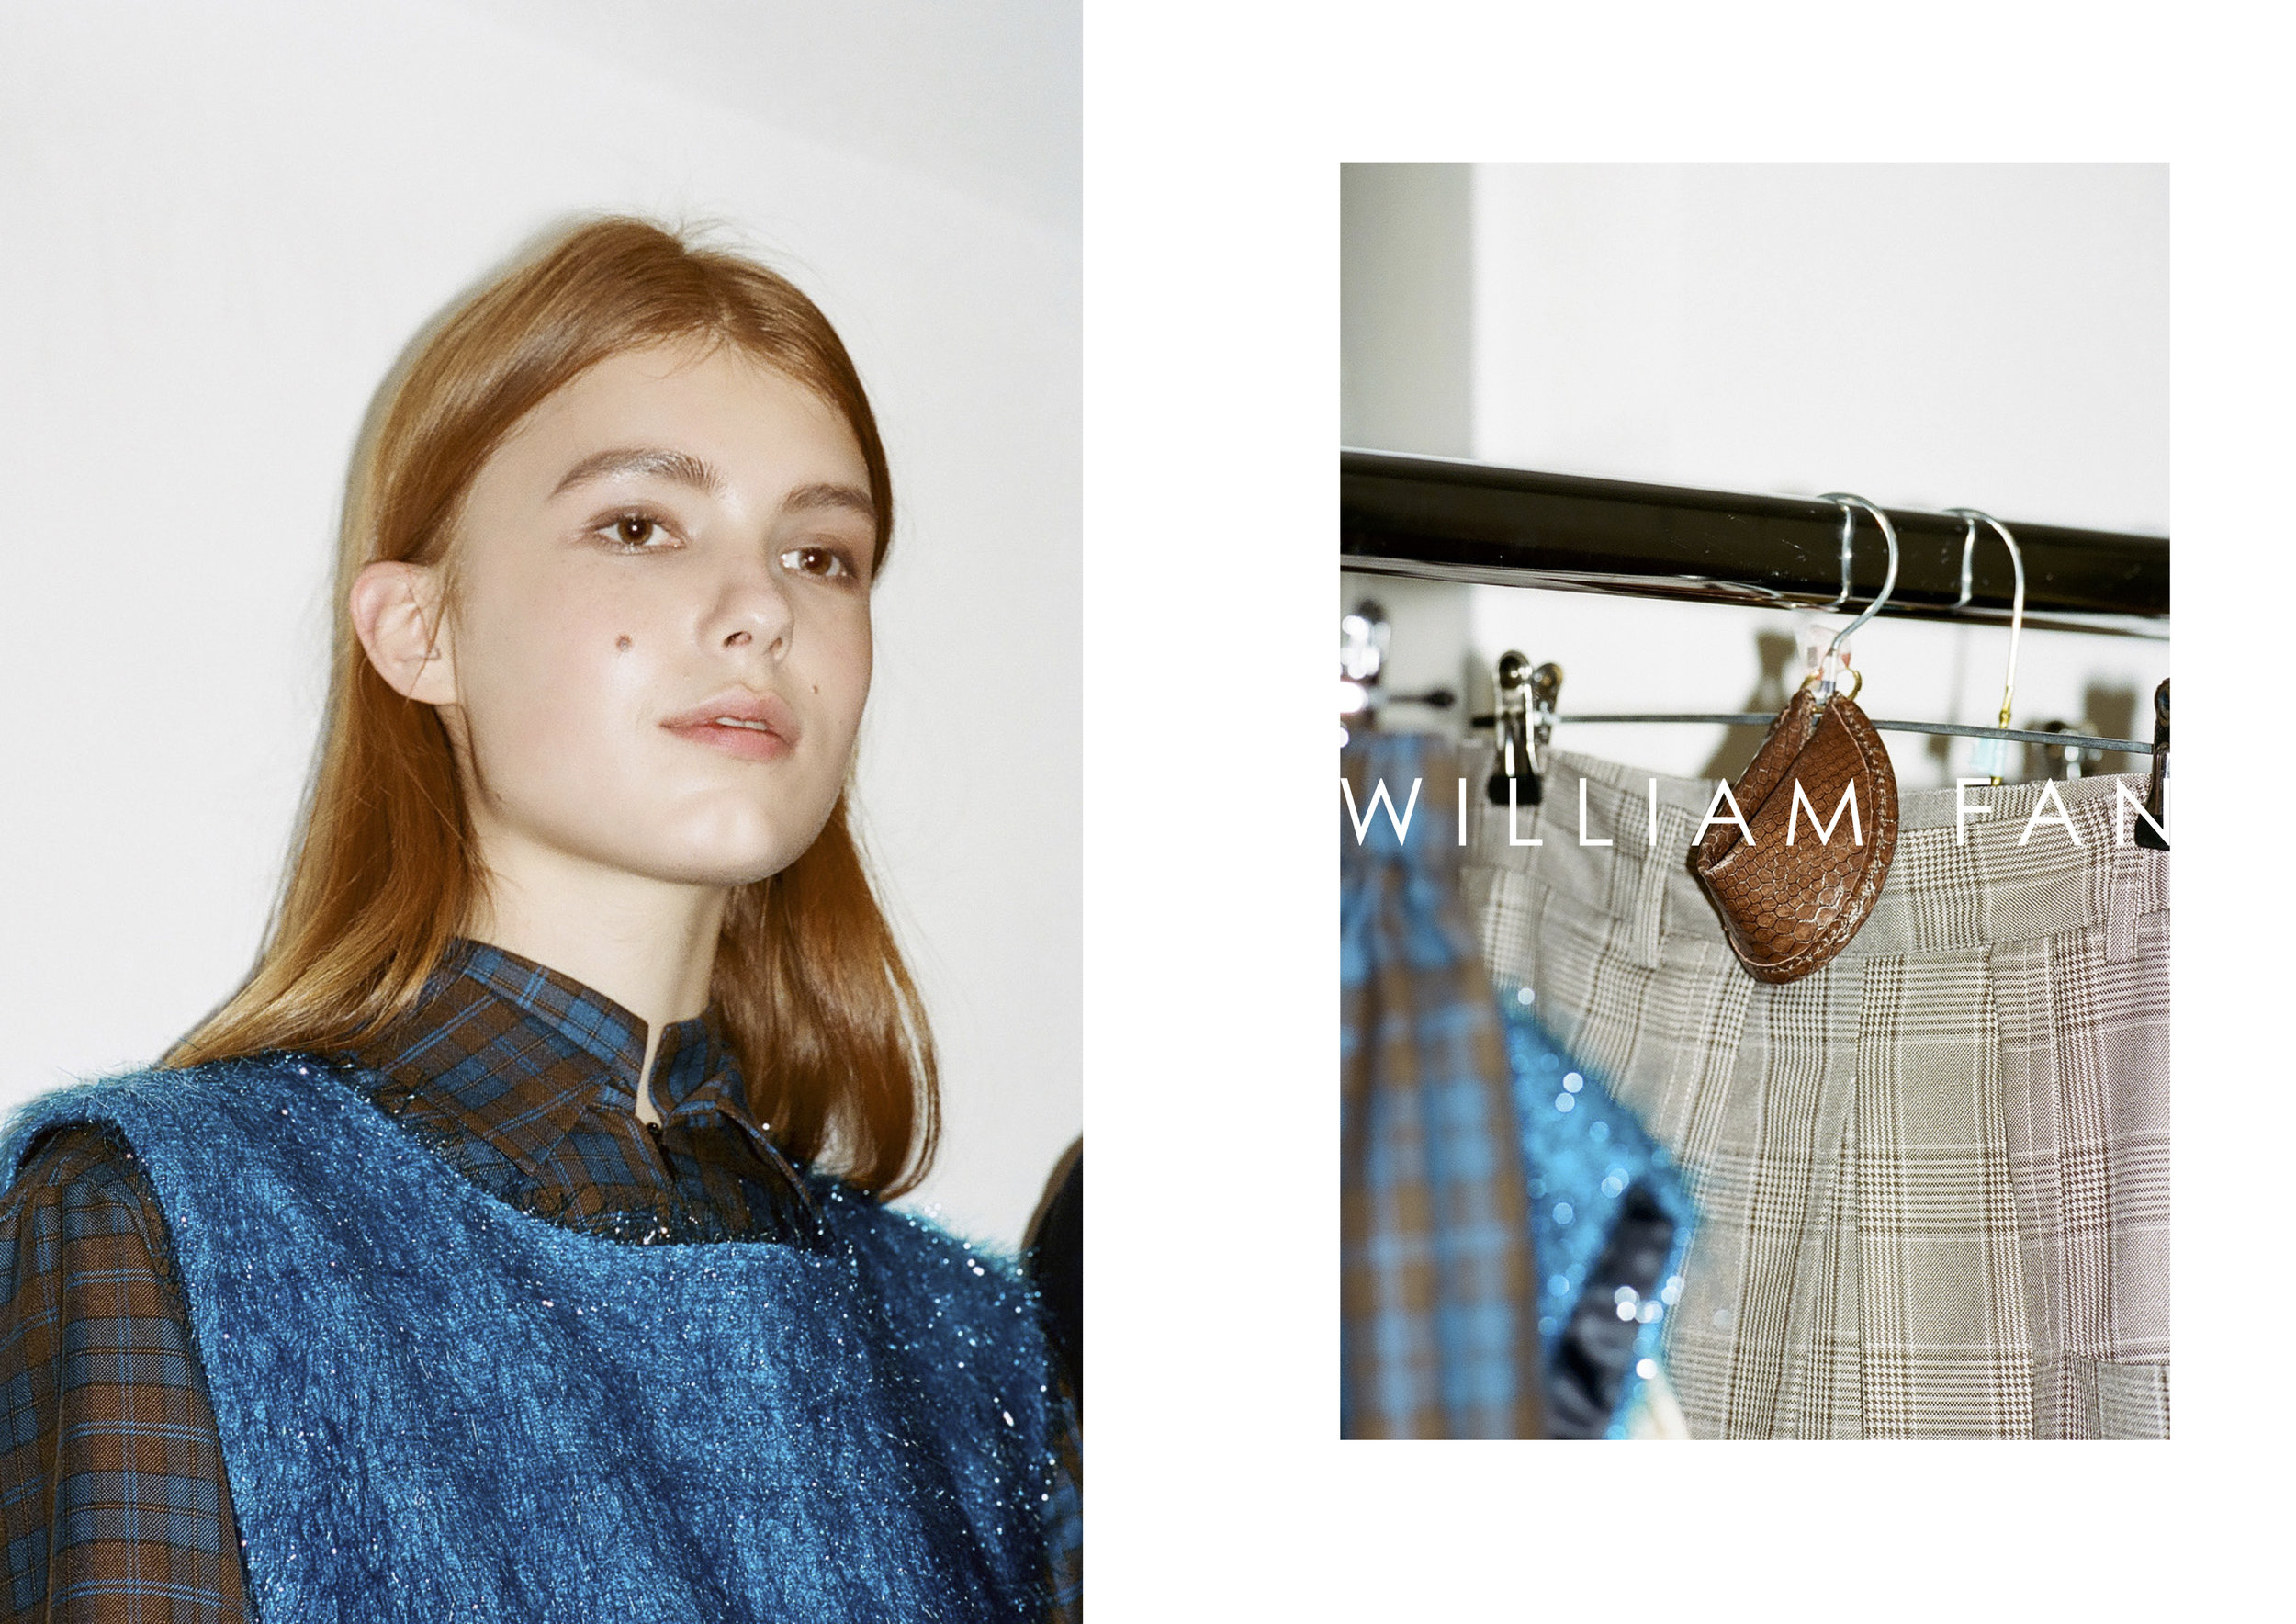 AW 18_19 CAMPAIGN INDESIGN 10.jpg